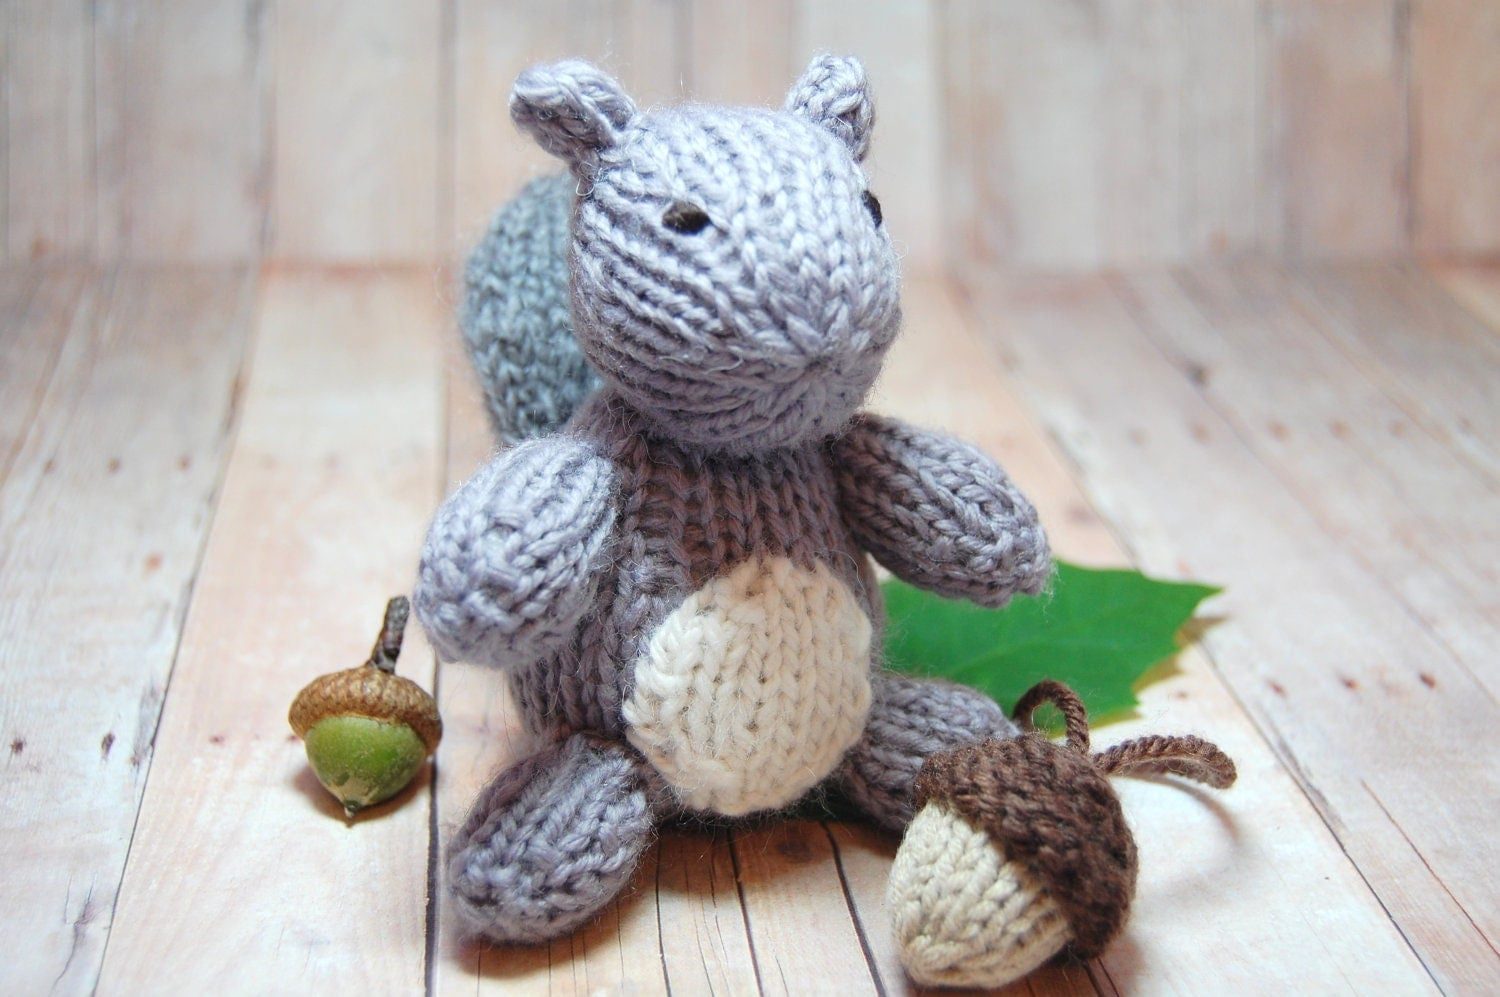 Gray Squirrel with Acorn Knitting Pattern and Picture Tutorial